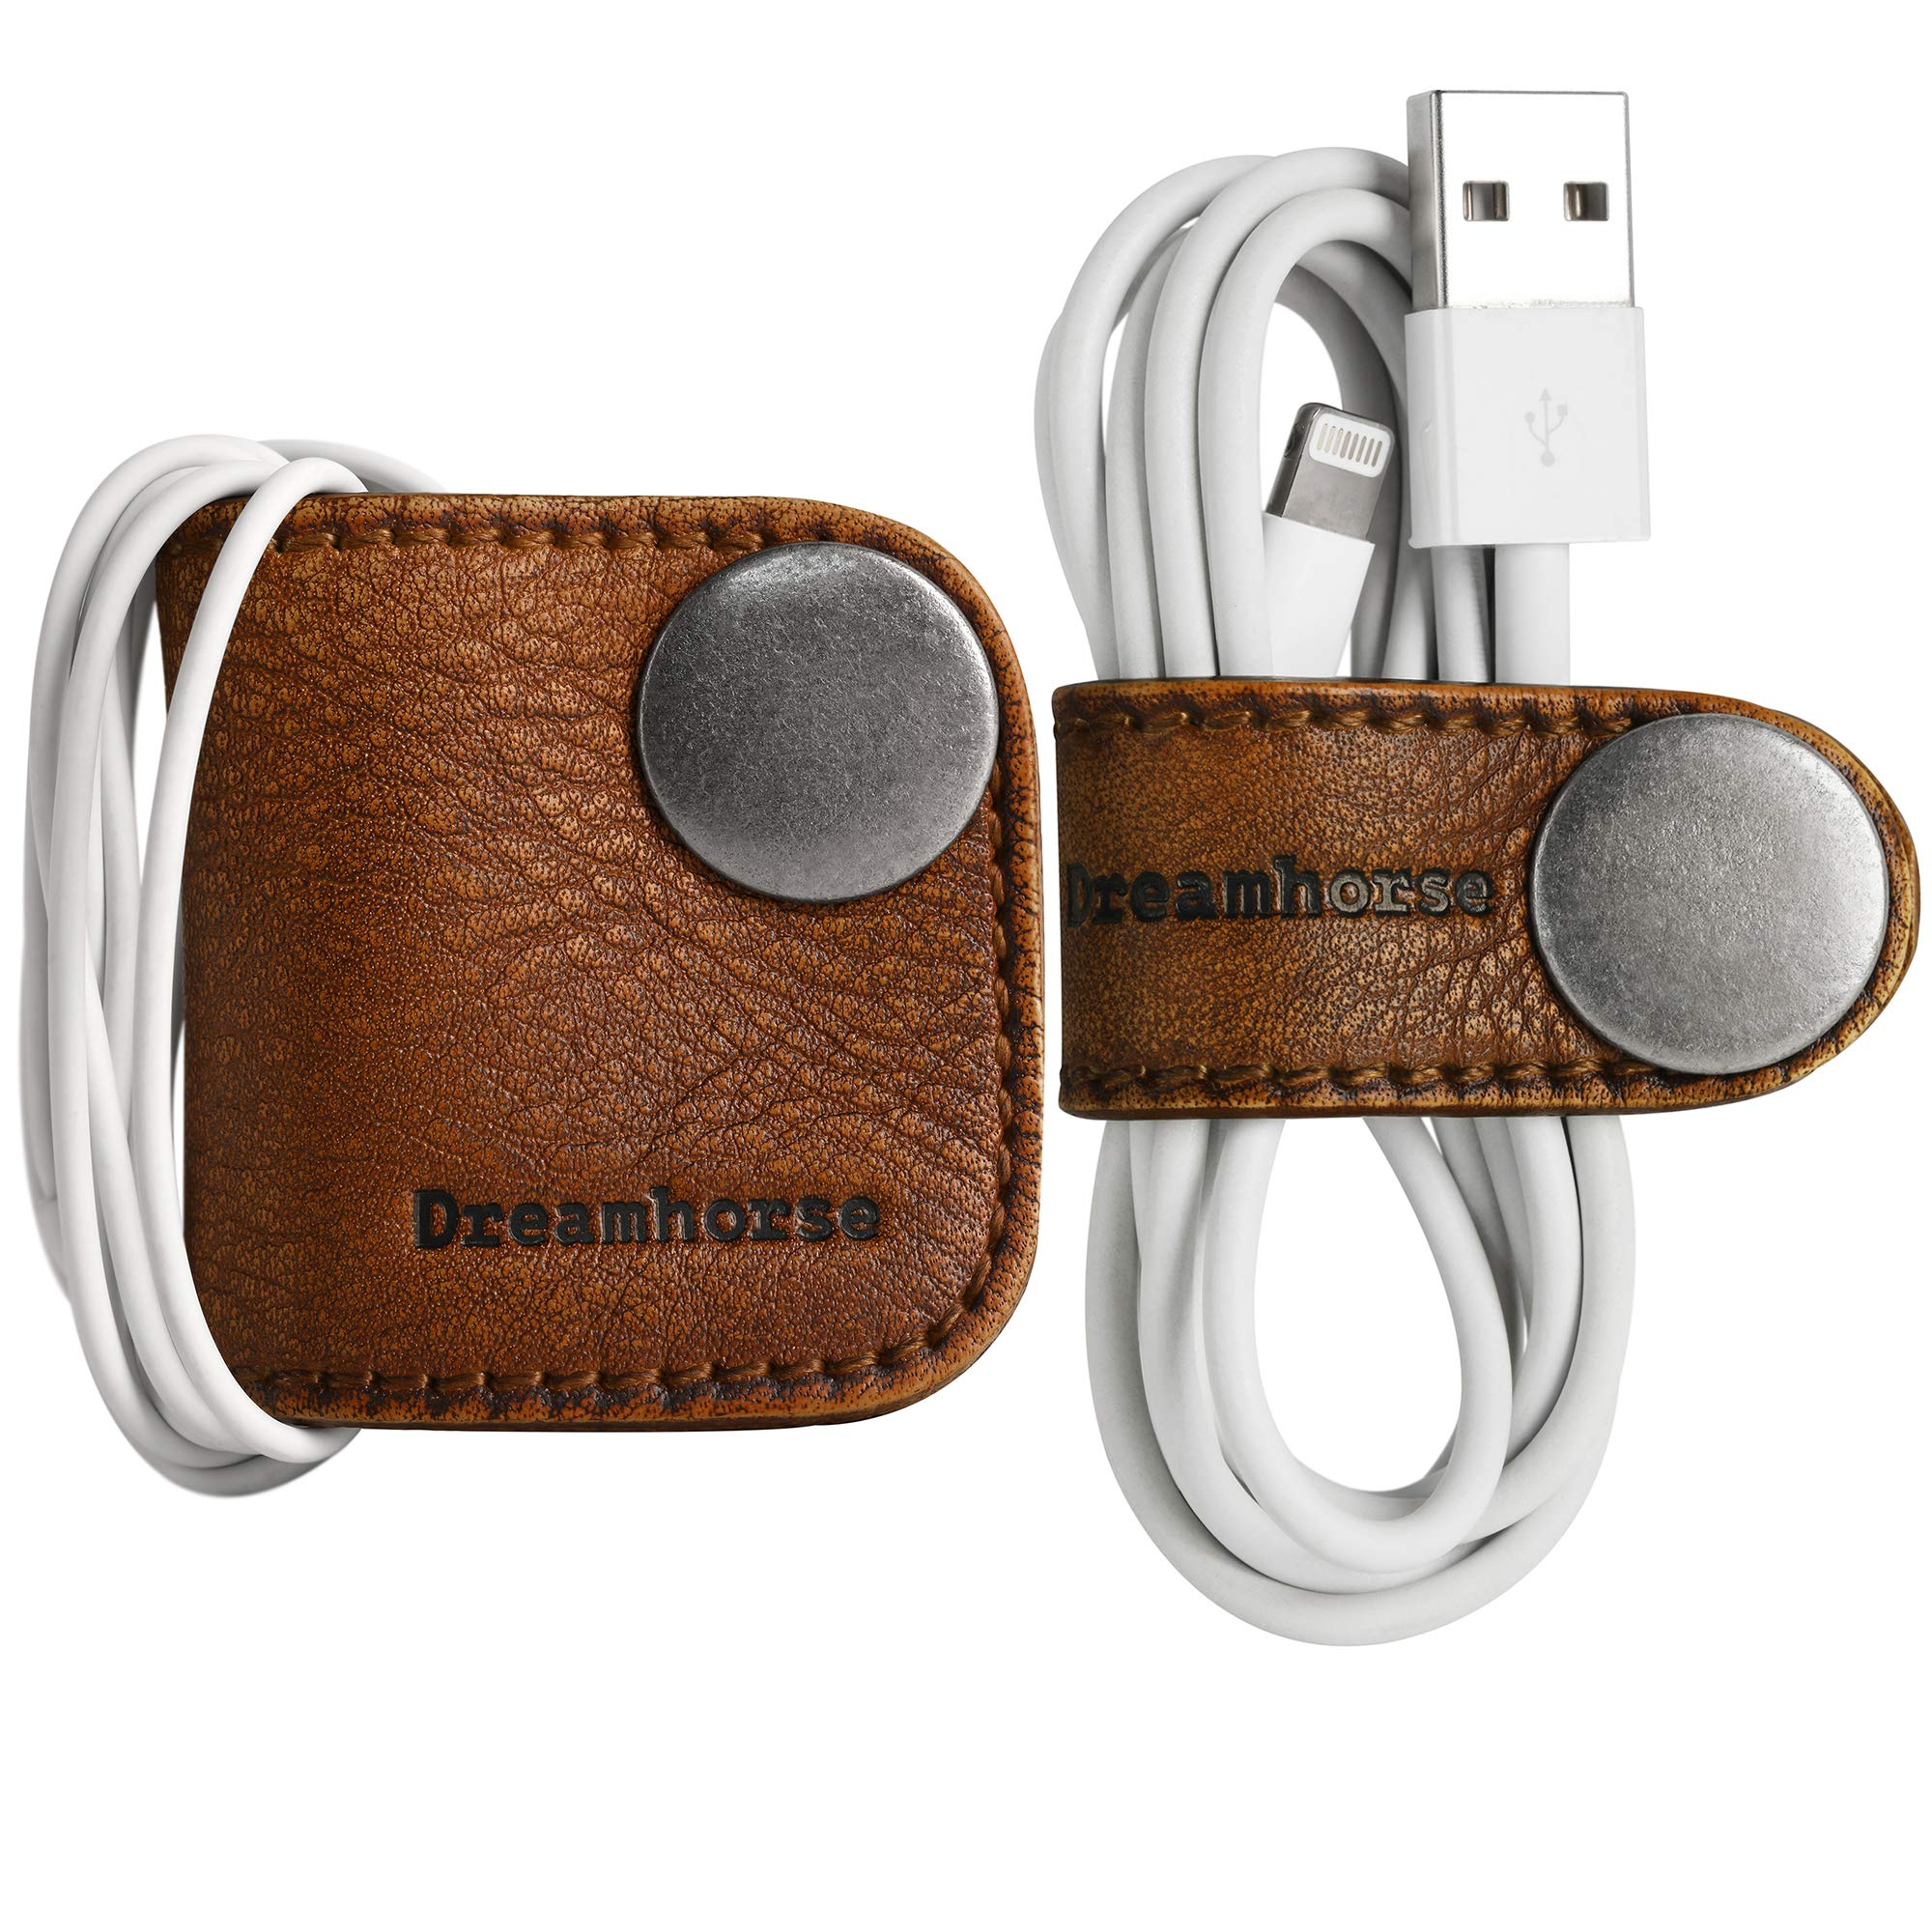 Cord Winder Cord Organizer Earbud Holder Earphone Wrap Earphone Organizer Headset Headphones Earphone Wrap Dreamhorse's Handmade Leather Protection Headphone Cable Pack of 2 Brown